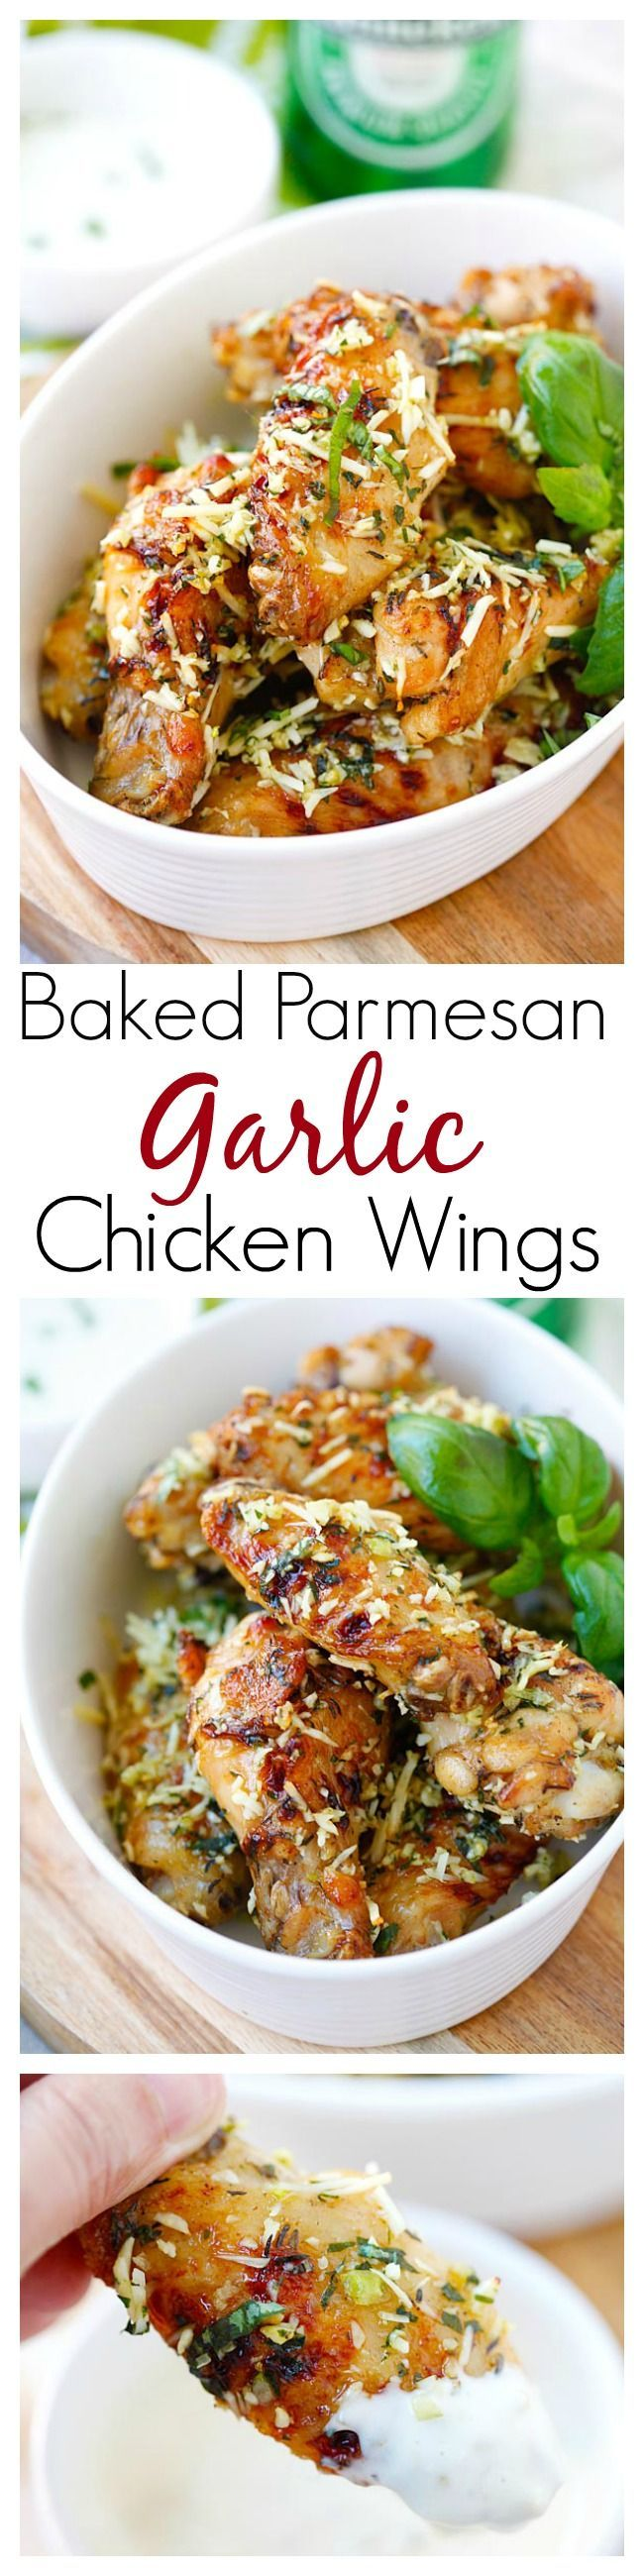 Baked Parmesan Garlic Chicken Wings – best and easiest baked chicken wings EVER with blue cheese mustard dressing | rasamalaysia.com #wings